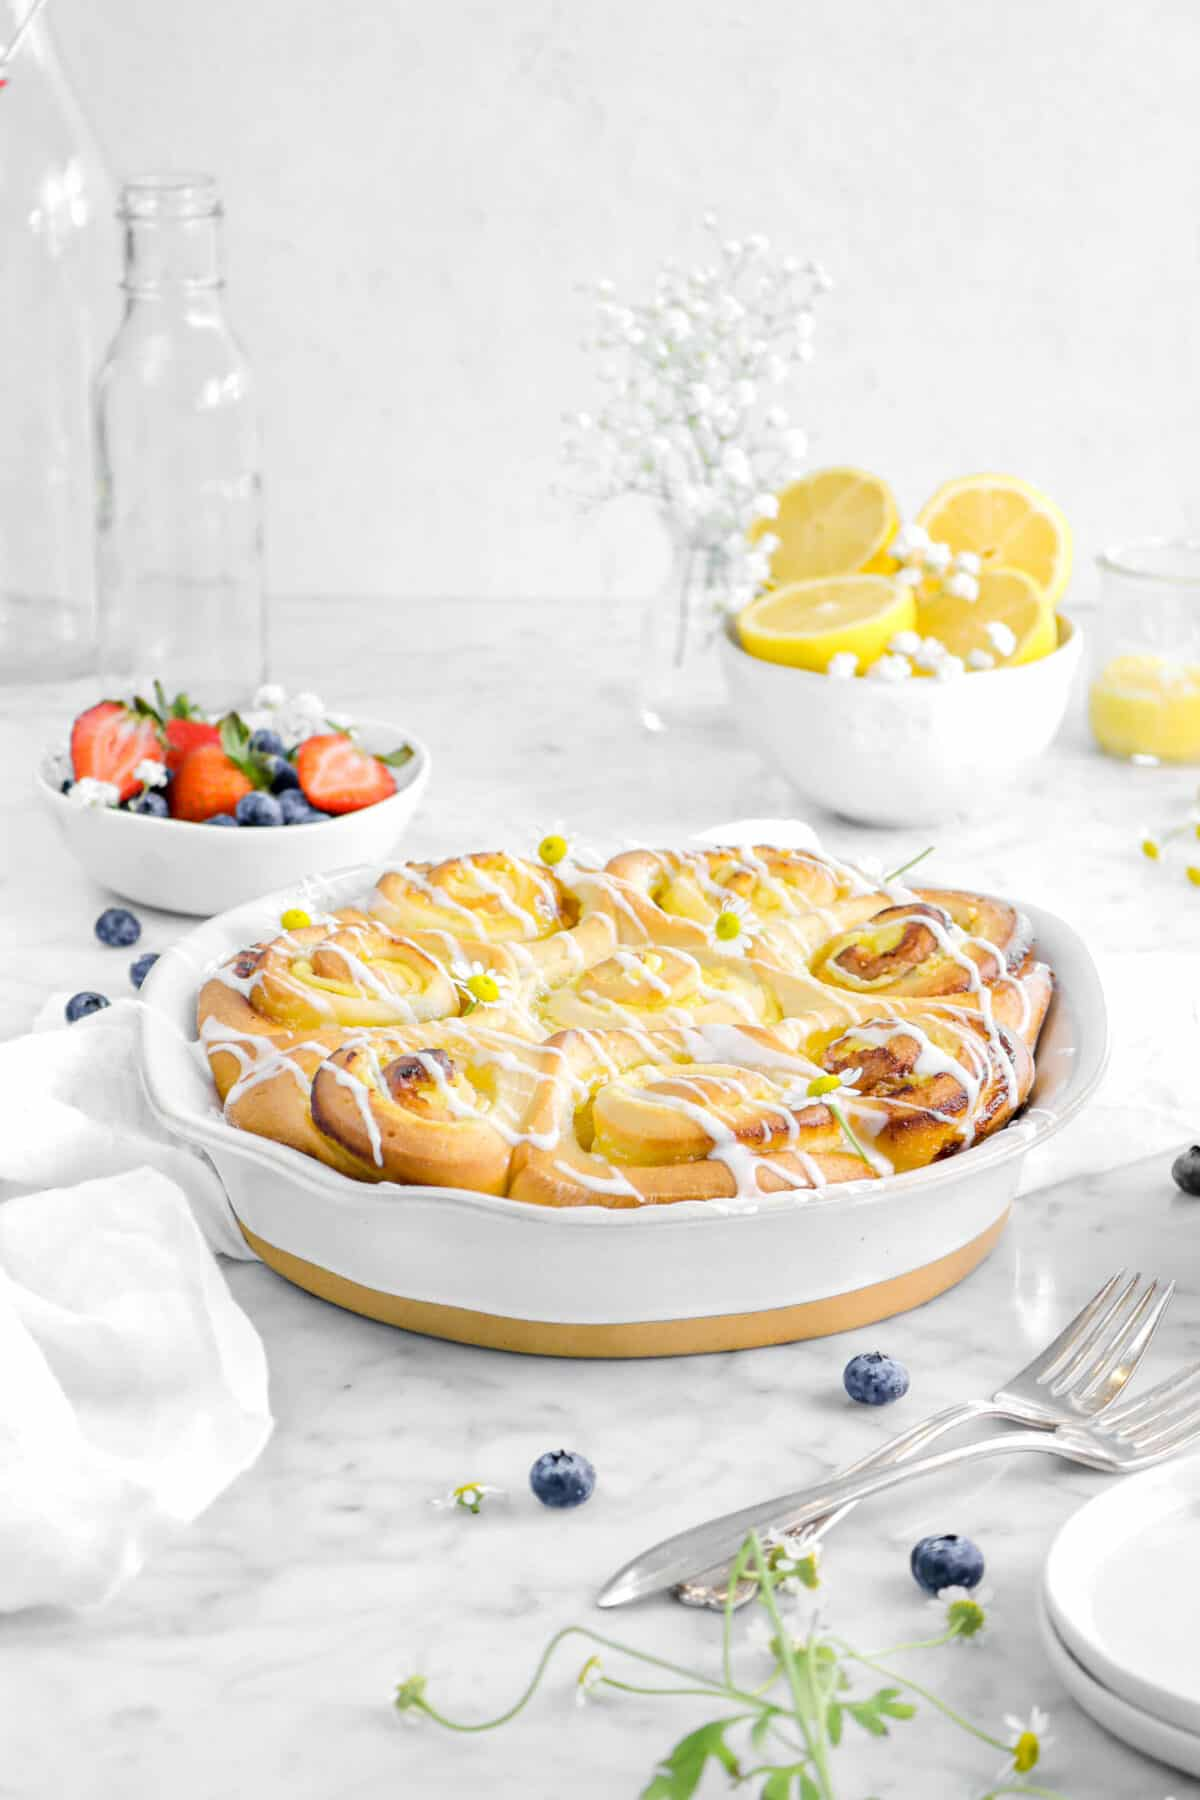 lemon sweet rolls in pie pan with berries, fruit, a bowl of lemons, flowers, and two glasses